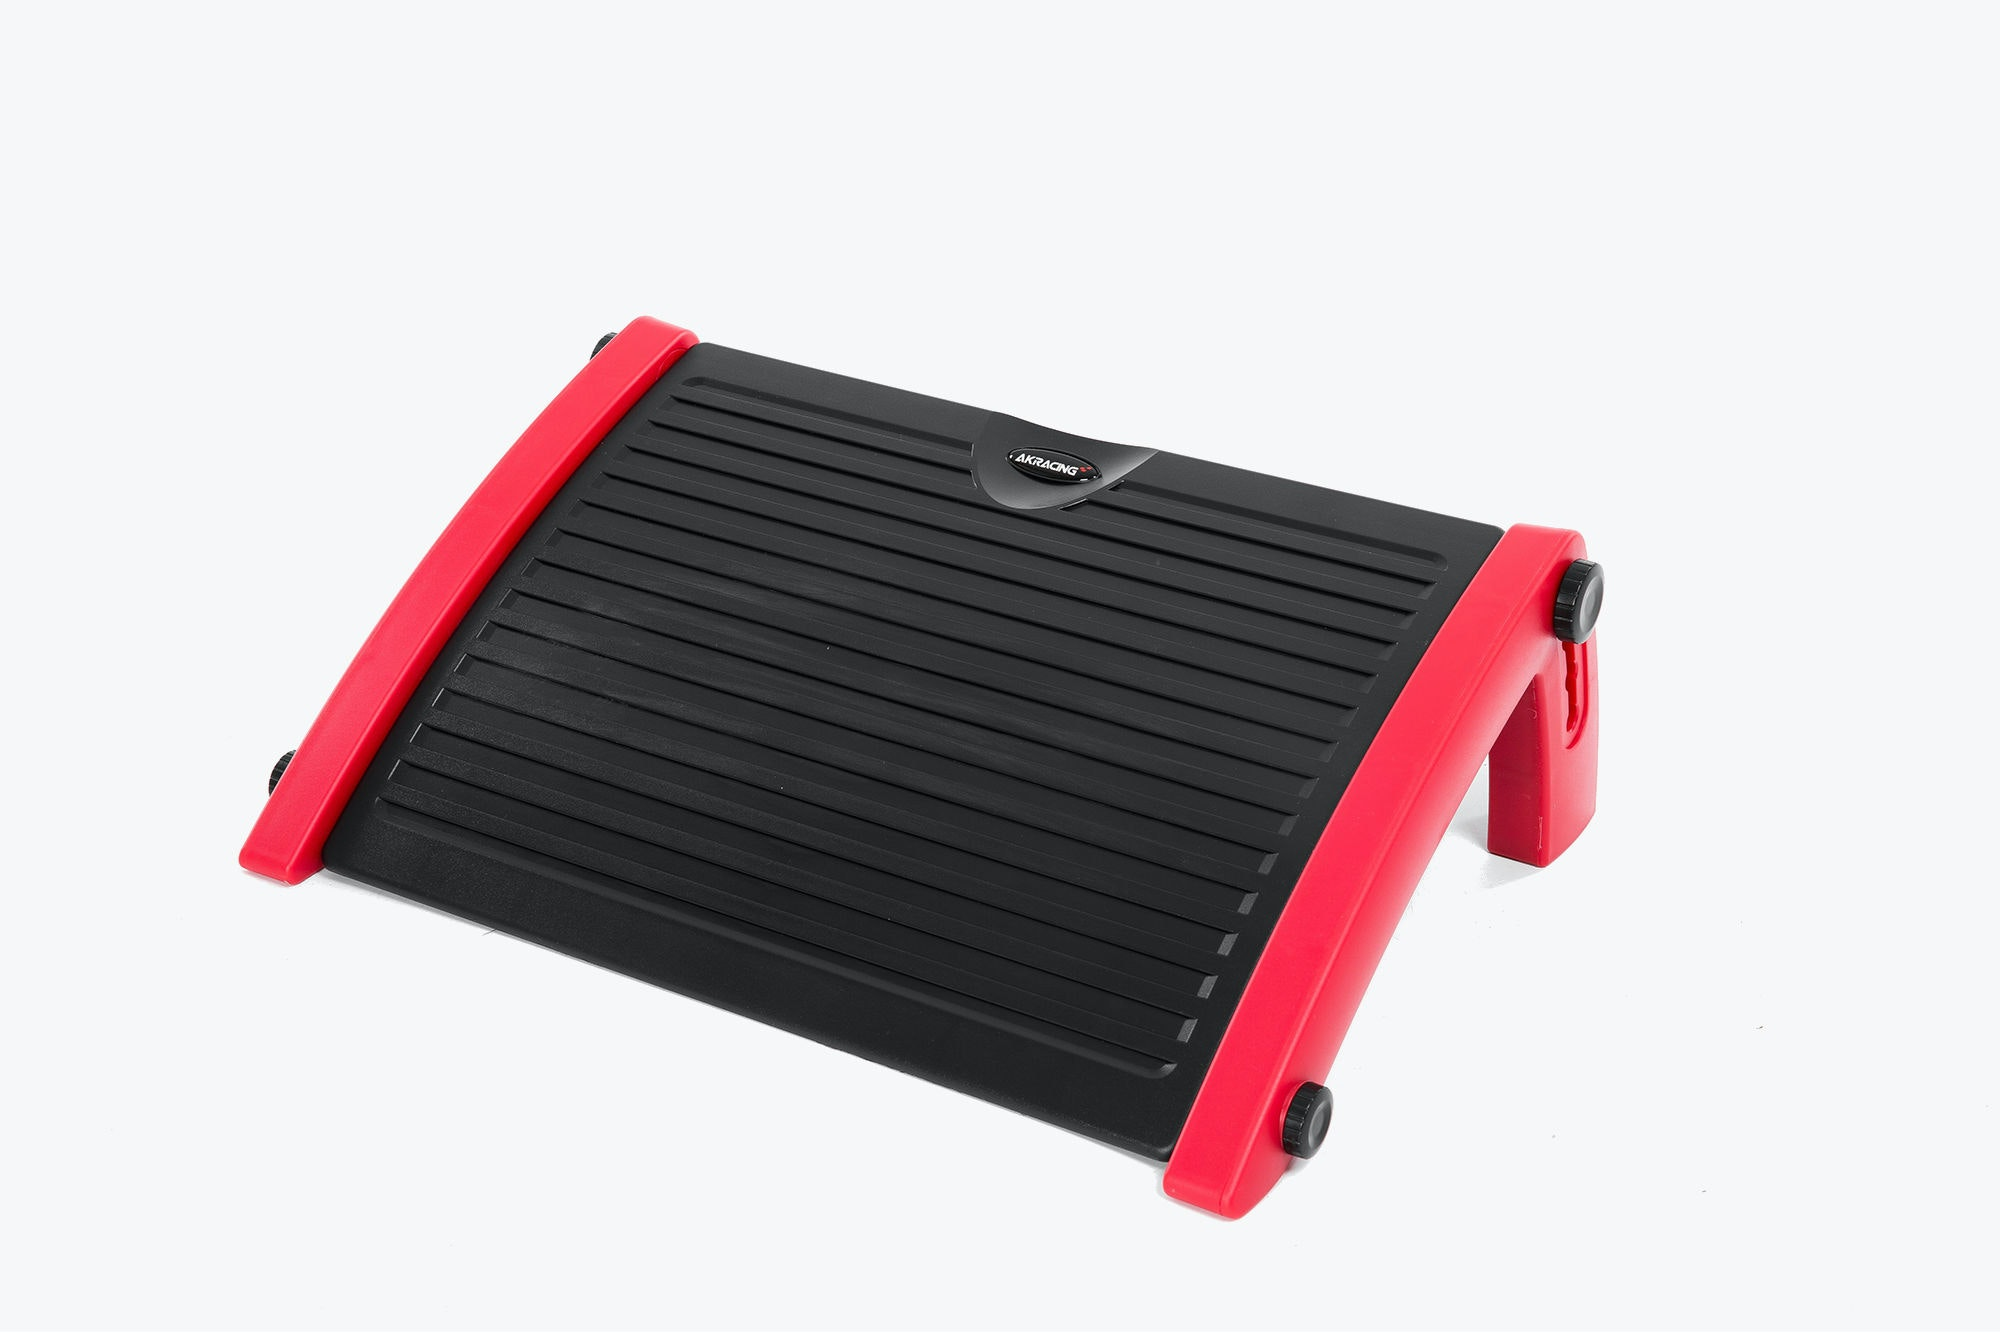 Red (+ $34.99)